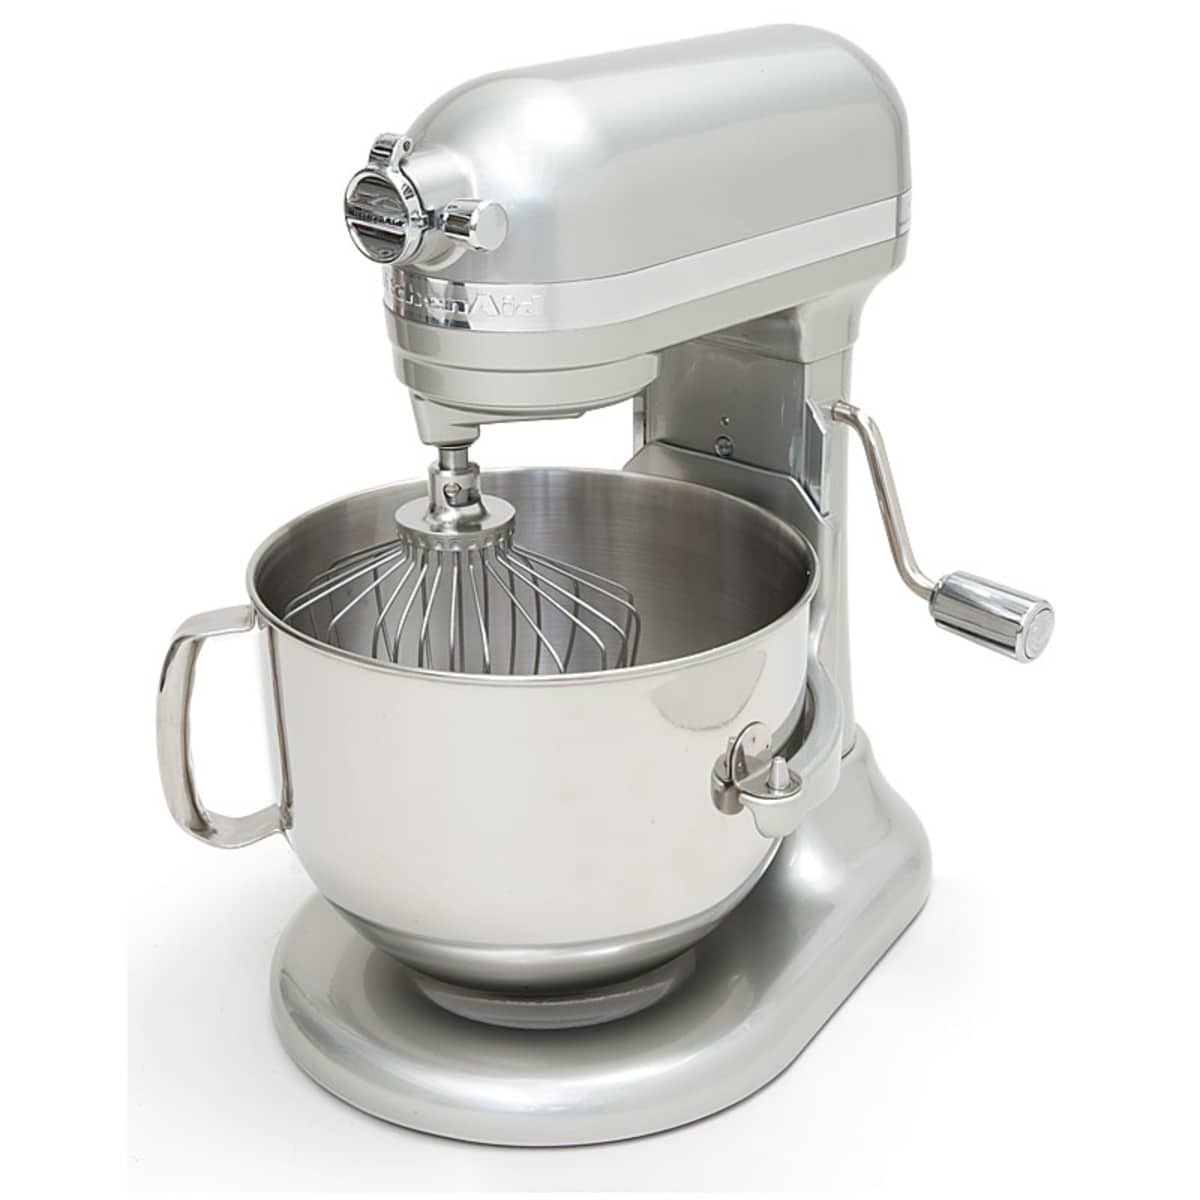 The Best Stand Mixers (High-End) | Cook's Illustrated